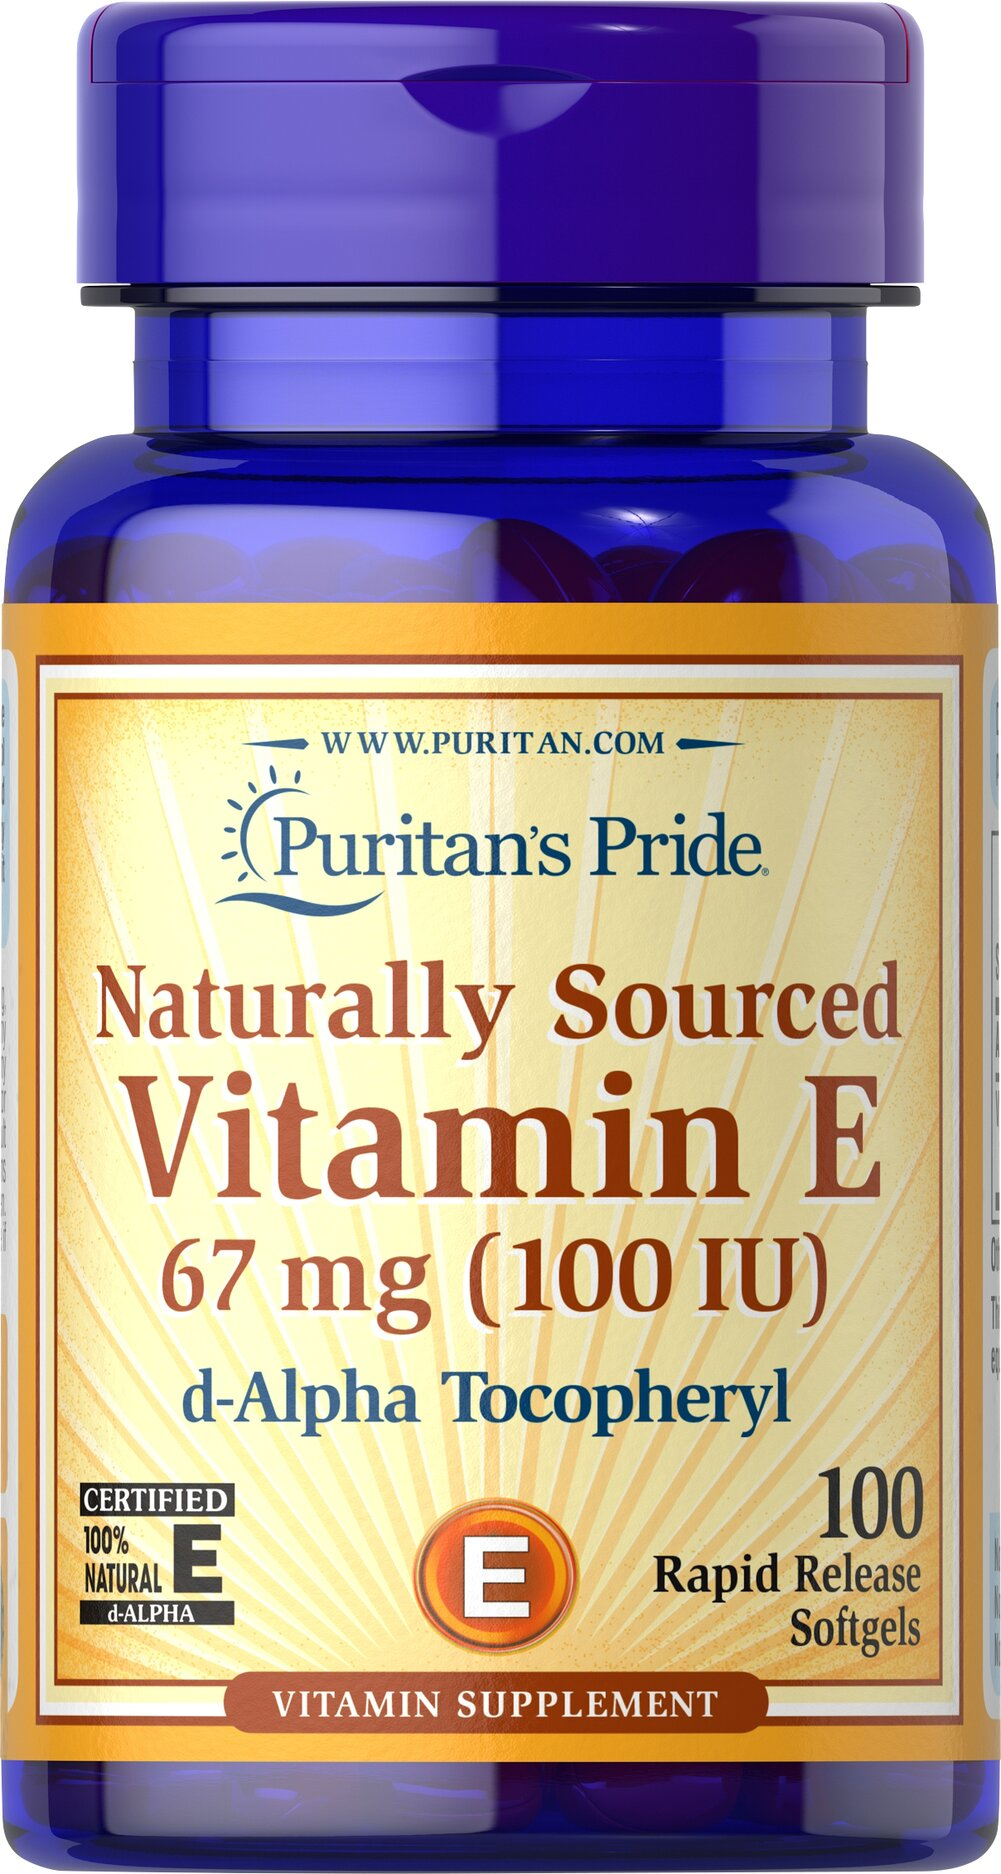 Vitamin E-100 iu 100% Natural